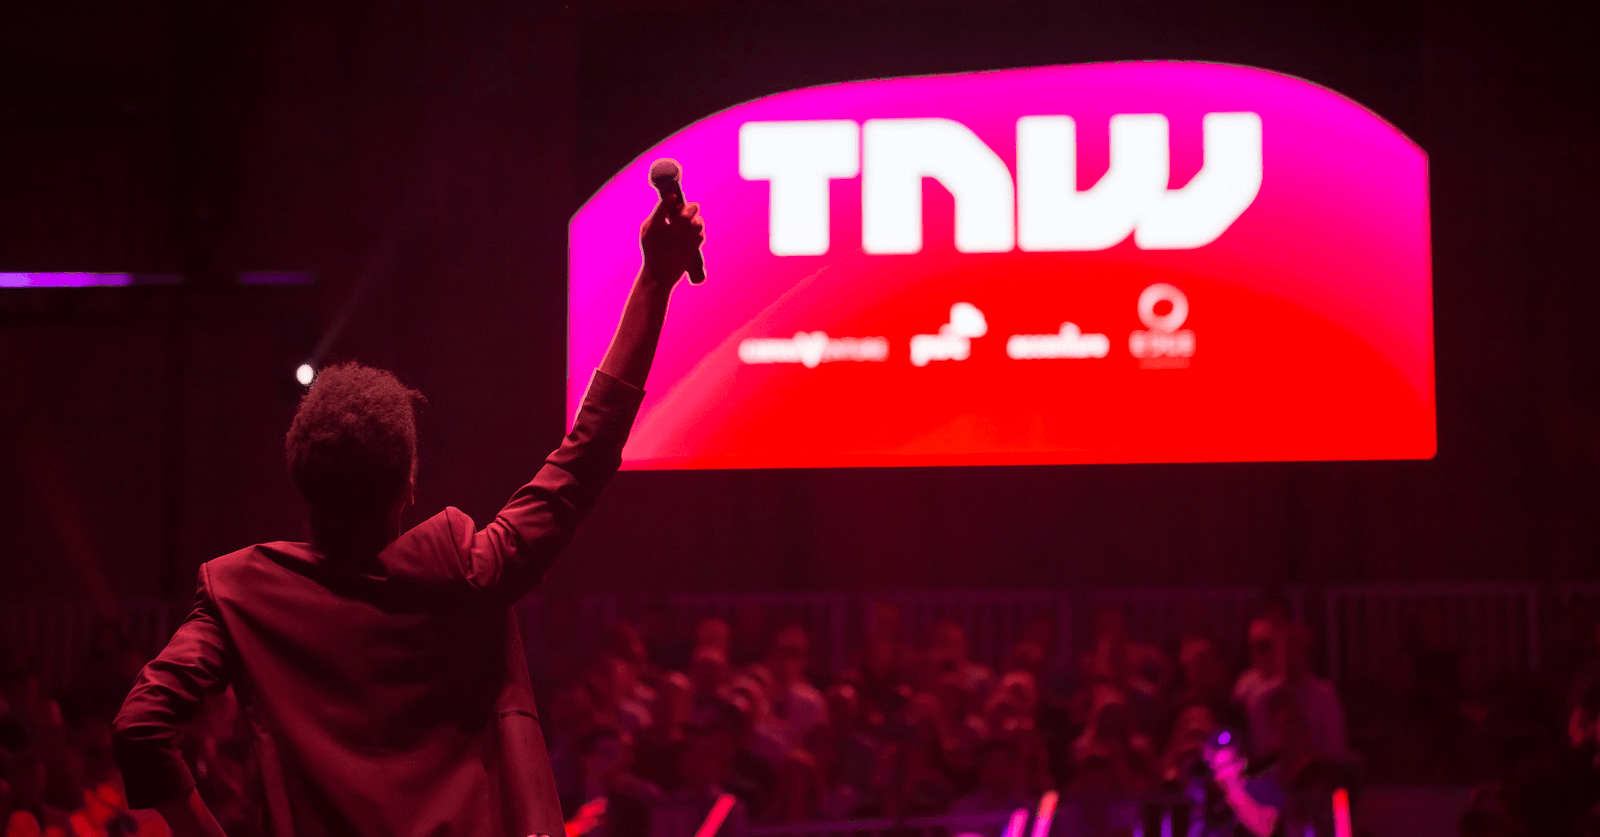 TNW2019 Daily: Your babies will thank you one day